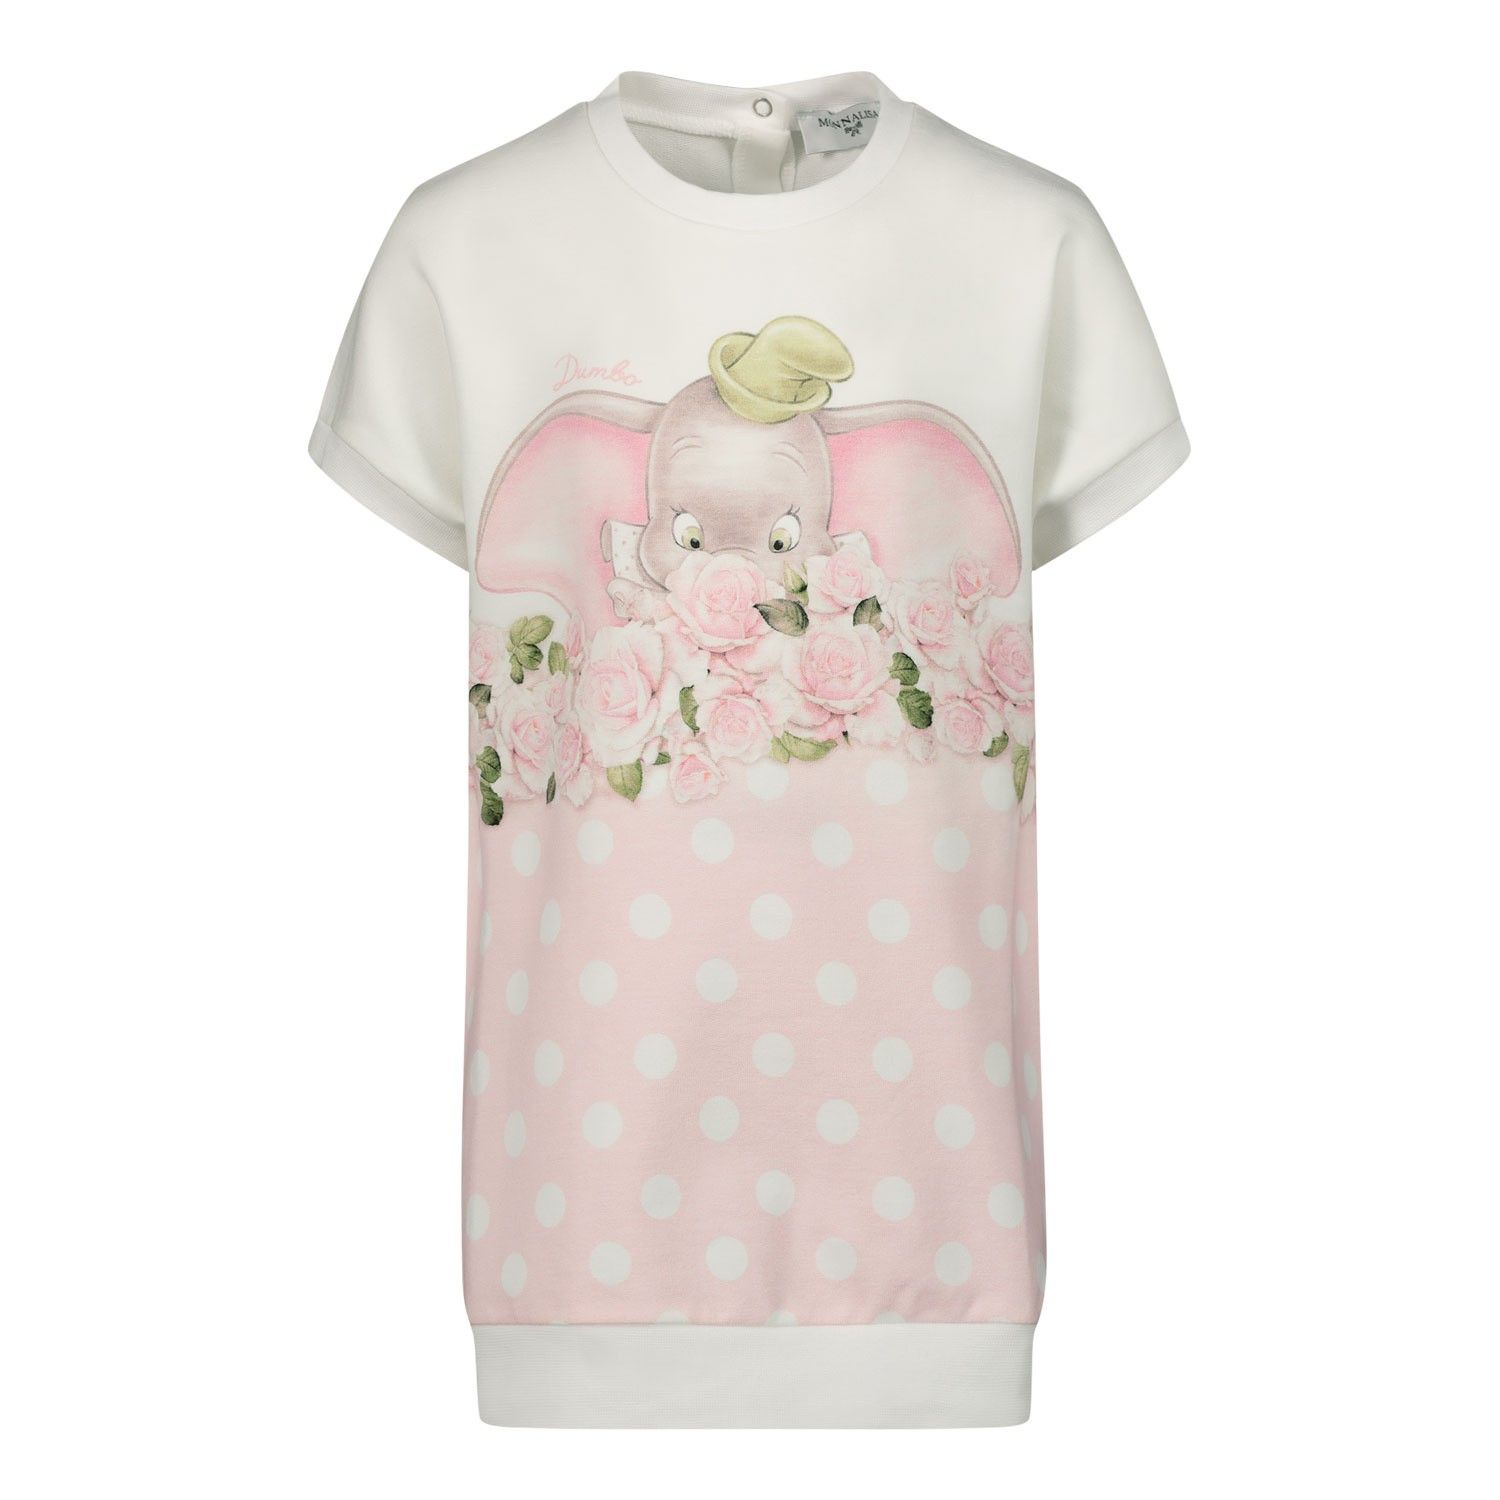 Picture of MonnaLisa 395905 baby dress light pink